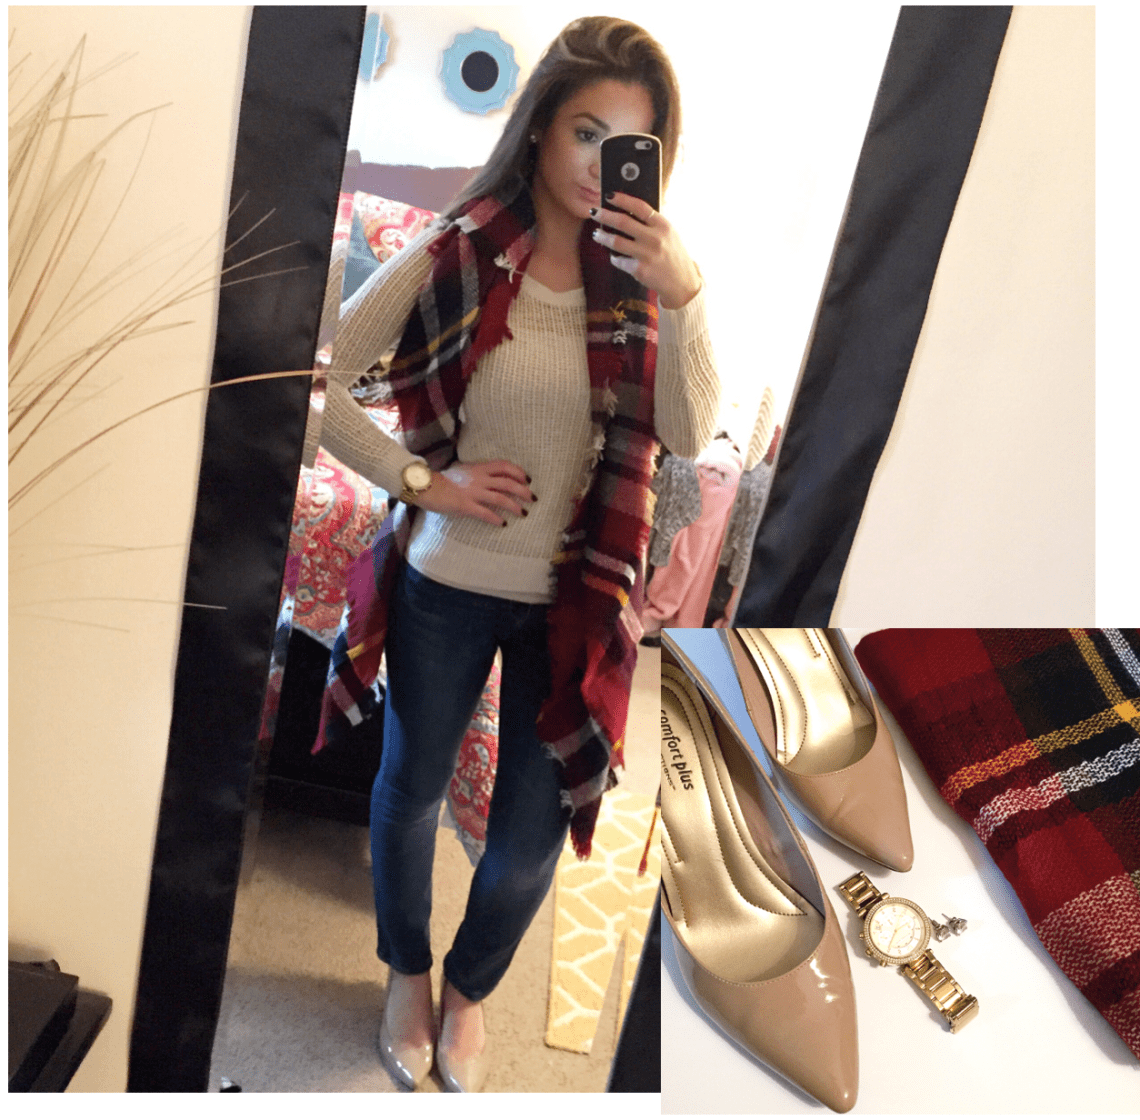 Shirt: Old Navy // Jeans: American Eagle // Scarf: KnitPopShop // Heels: Comfort Plus [Payless] // Watch: Michael Kors // Studs: Ross Simons